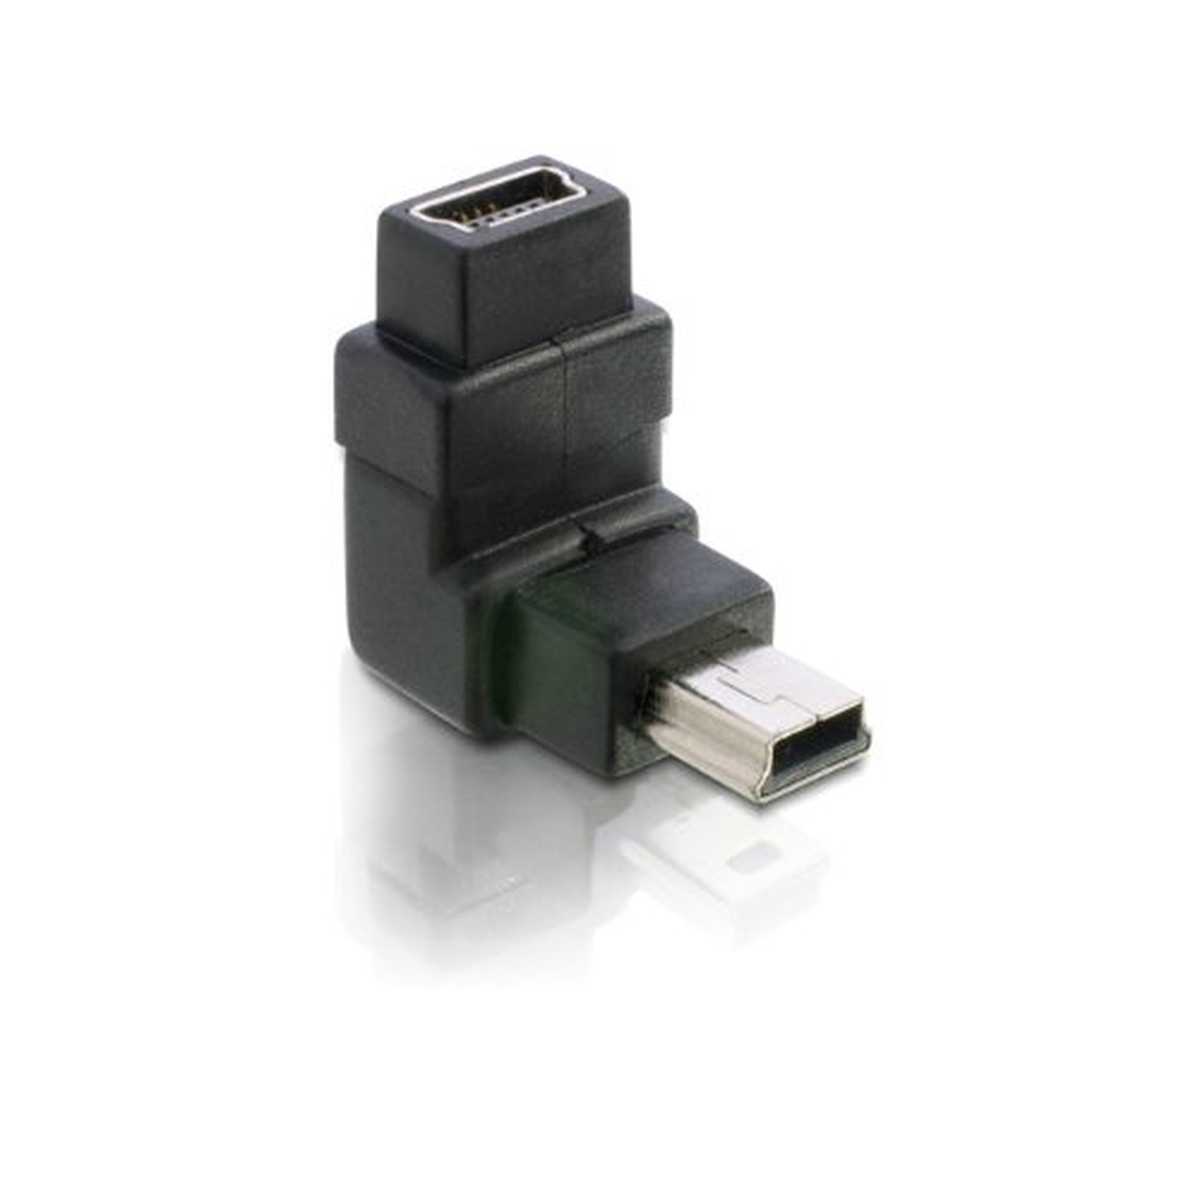 DeLOCK Adapter USB-B mini 5pin Stecker Buchse 90°